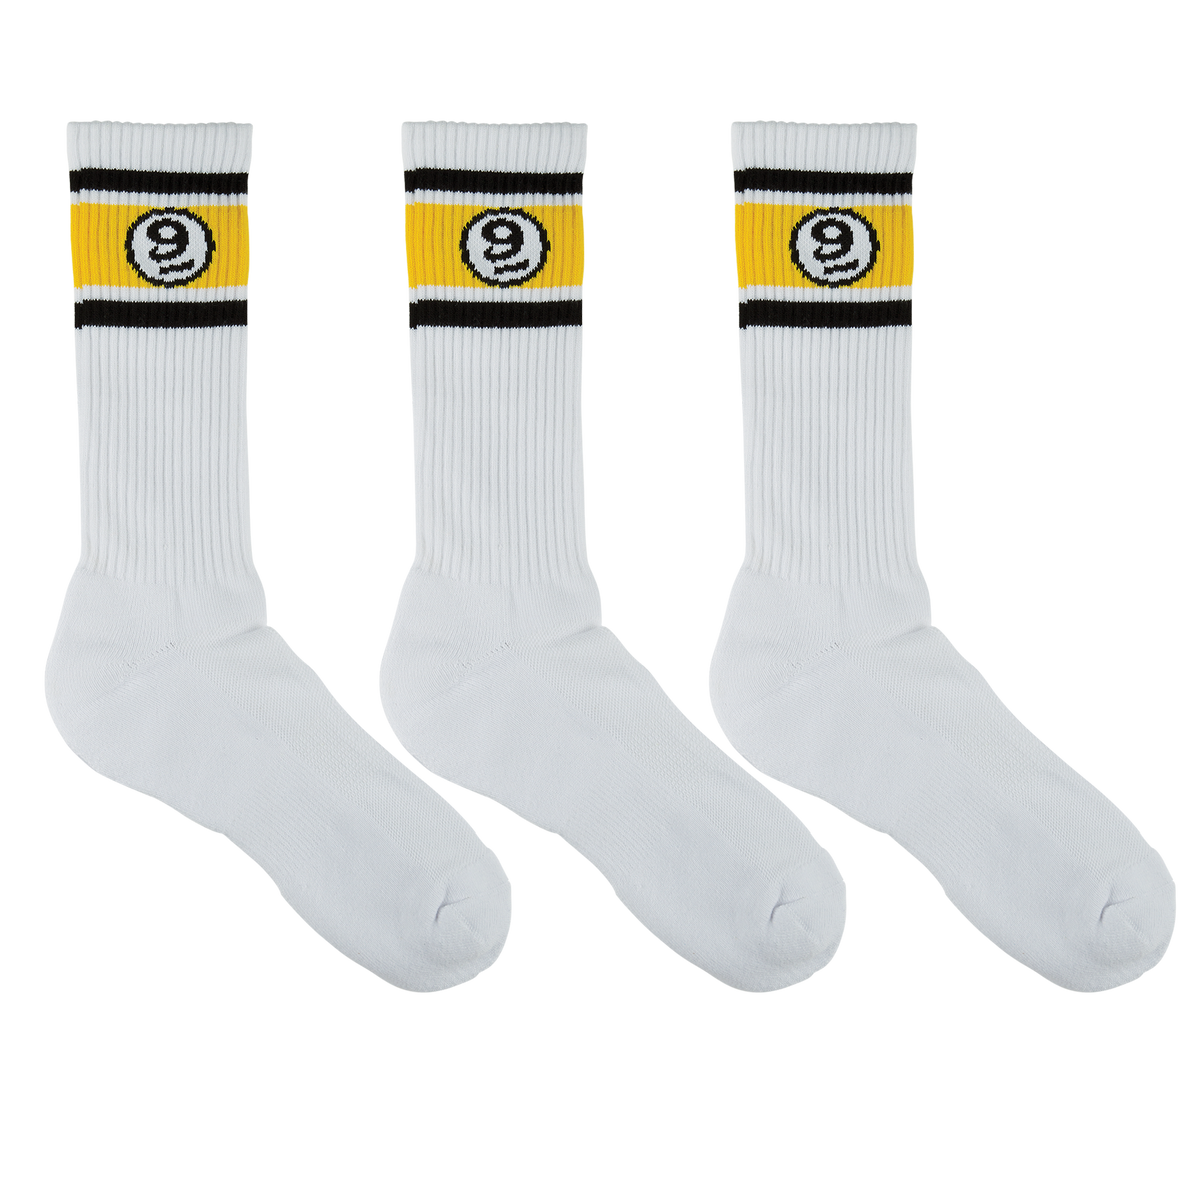 VINTAGE SOCK 3 PACK - WHITE